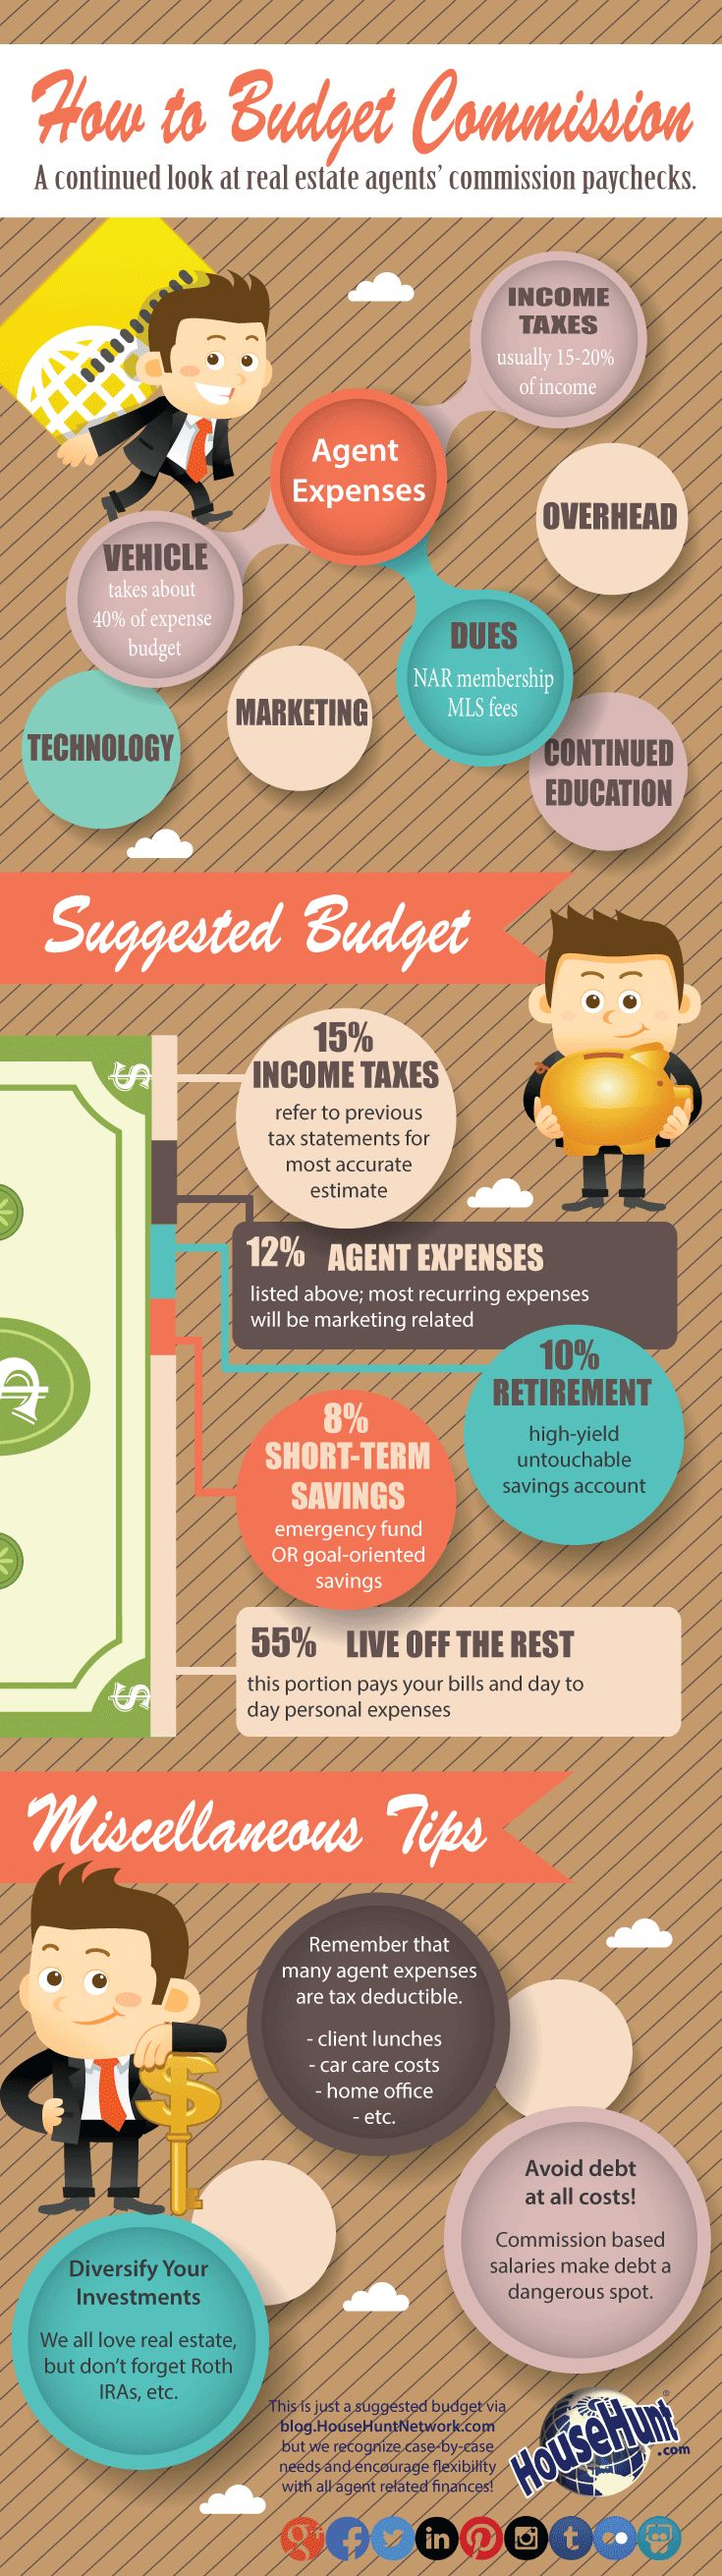 How to Budget Commission #Infographic : http://www.blog.househuntnetwork.com/how-to-budget-commission/